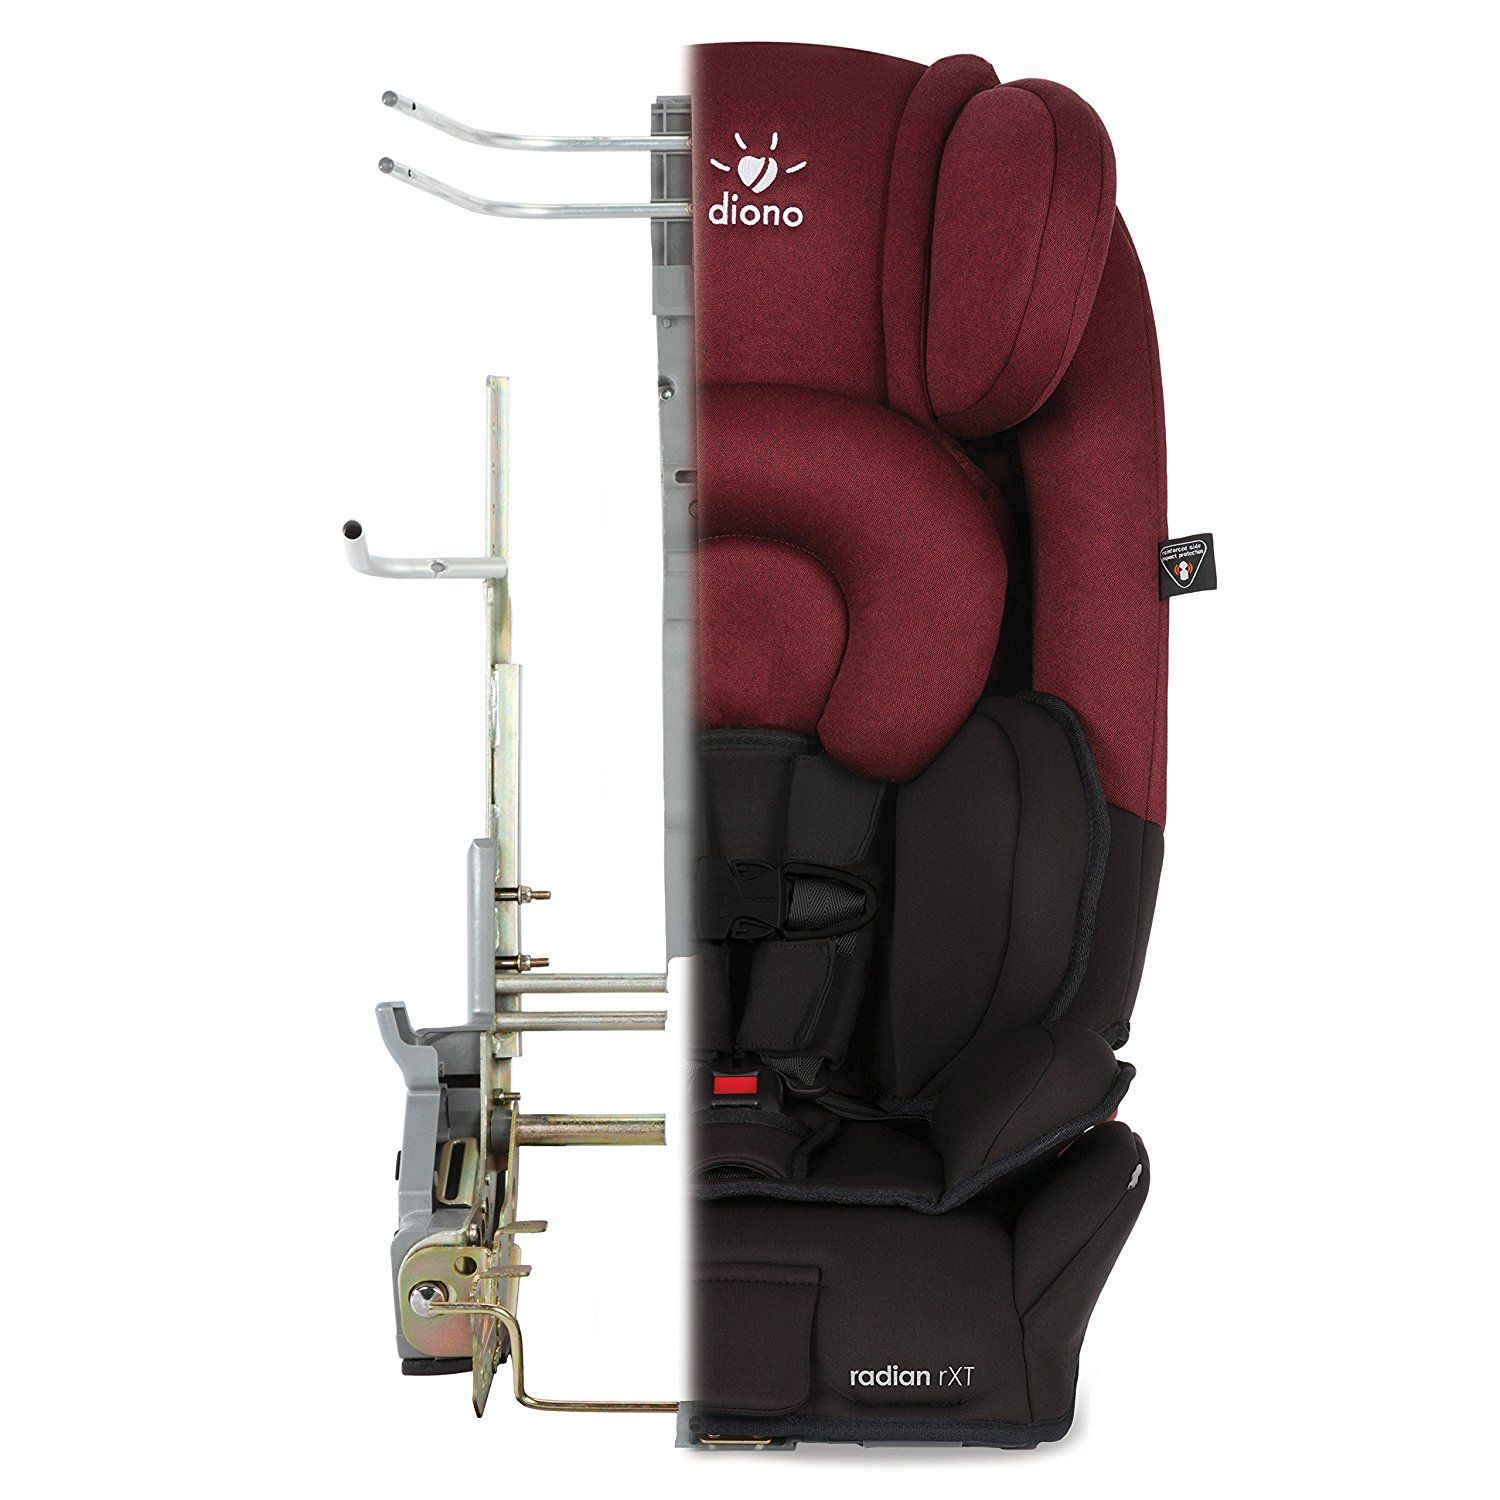 The diono radianrxt convertible booster car seats are designed with a full steel frame aluminum reinforced sides providing unmatched safety